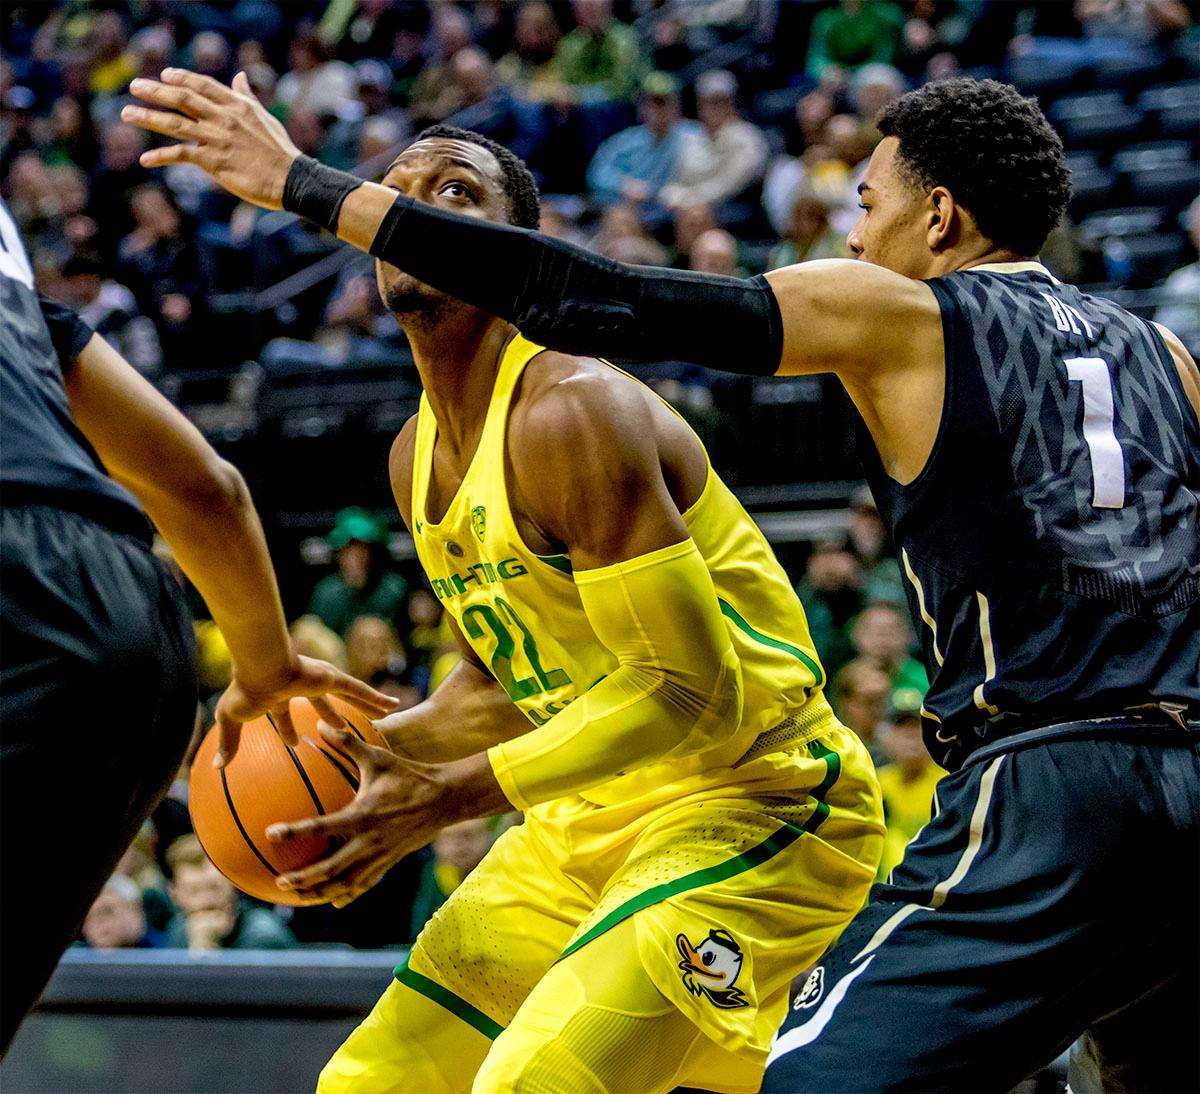 The Duck's MiKyle McIntosh (#22) looks for a path to the basket. The Oregon Ducks defeated the Colorado Buffaloes 77-62 at Matthew Knight Arena on Sunday. Troy Brown had a season-high score of 21 points, Elijah Brown added 17, while Kenny Wooten and Payton Pritchard added 13 and 12 respectively. Oregon is now 1-1 in conference play. The Ducks next face off against the Oregon State Beavers in Corvallis on Friday, January 5th. Photo by August Frank, Oregon News Lab